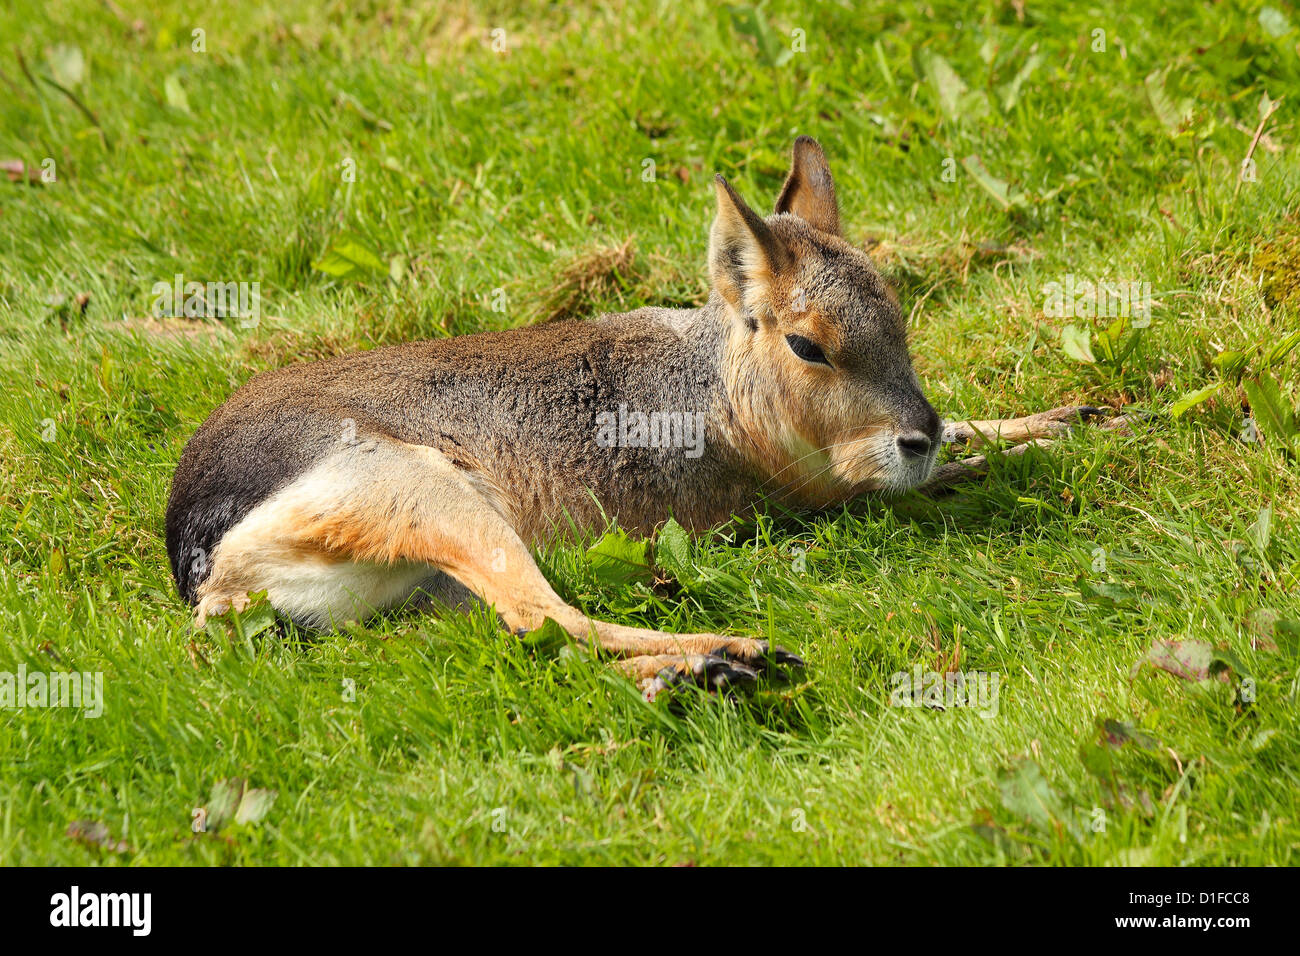 Patagonian Mara (Dolichotis patagonum), mara genus, a herbivore found in Argentina, in captivity in the United Kingdom - Stock Image